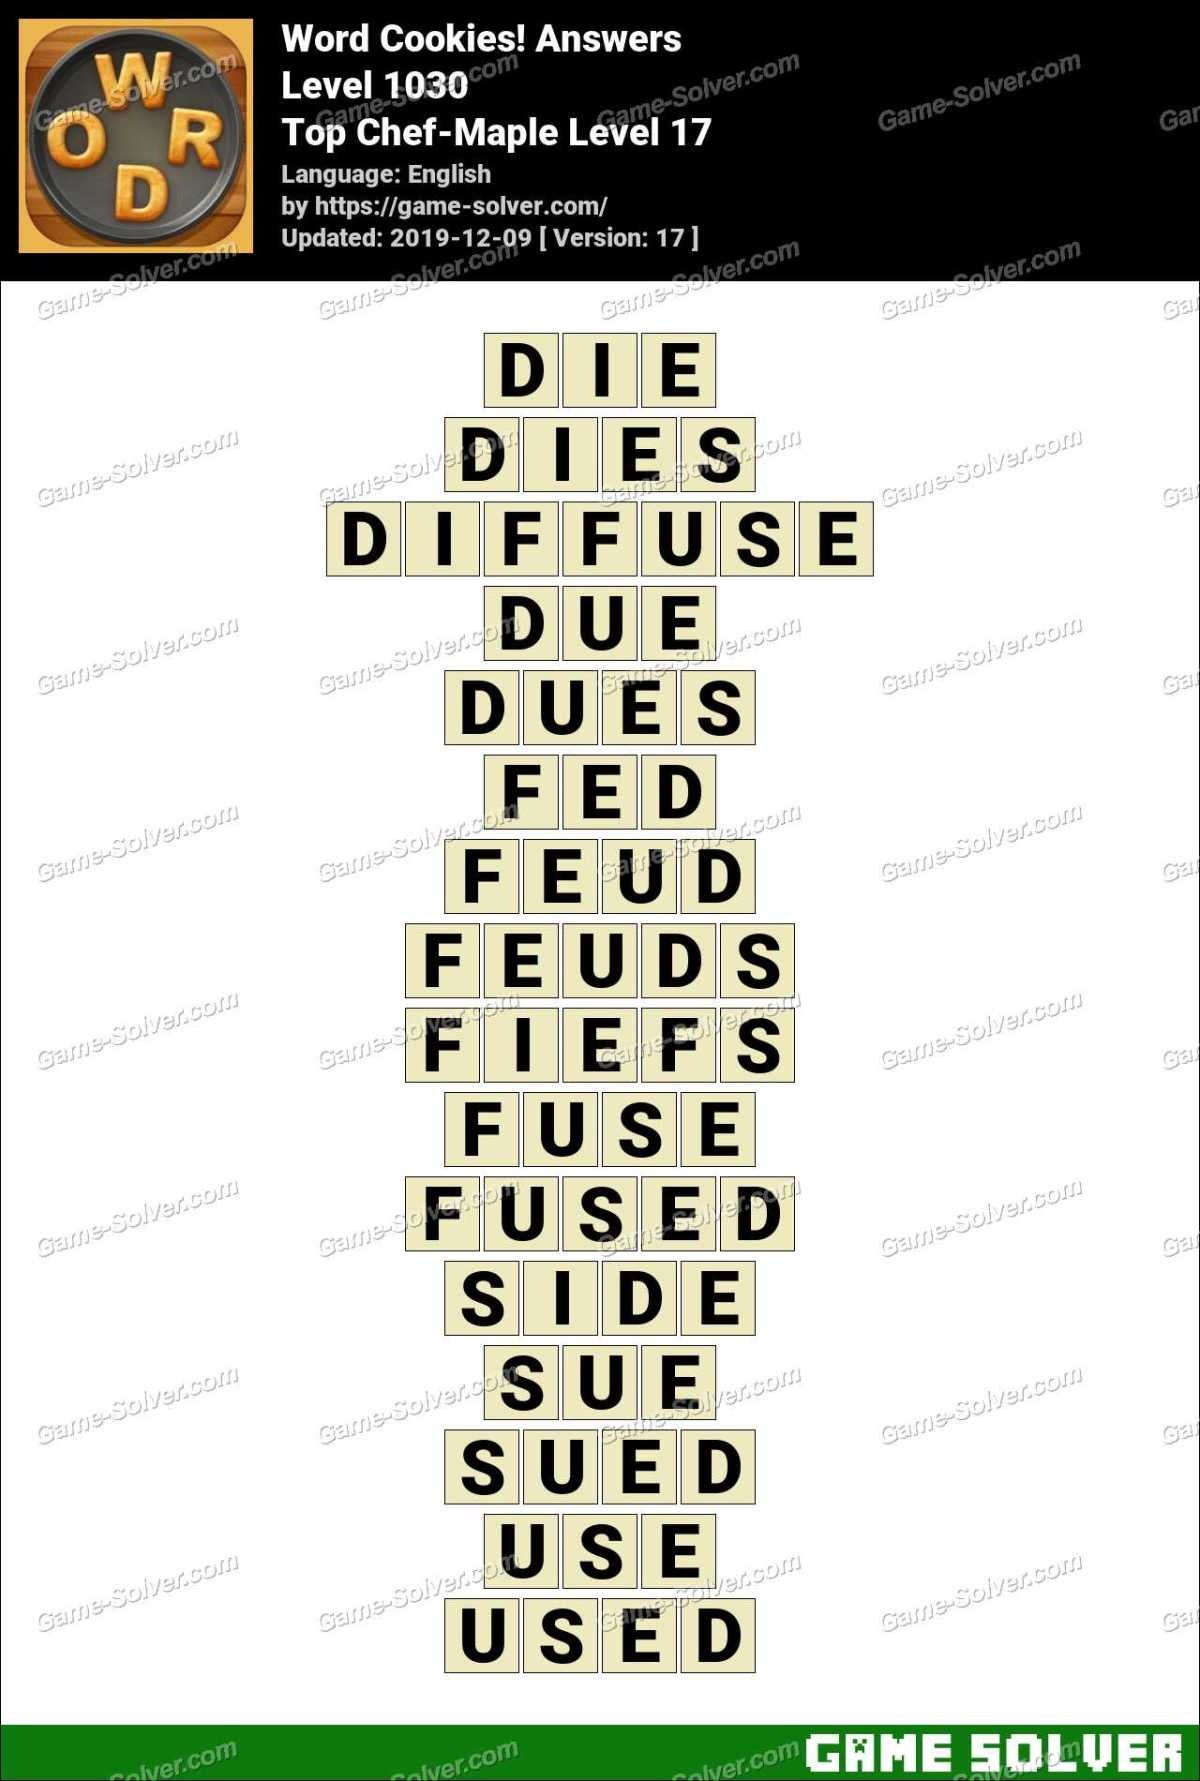 Word Cookies Top Chef-Maple Level 17 Answers